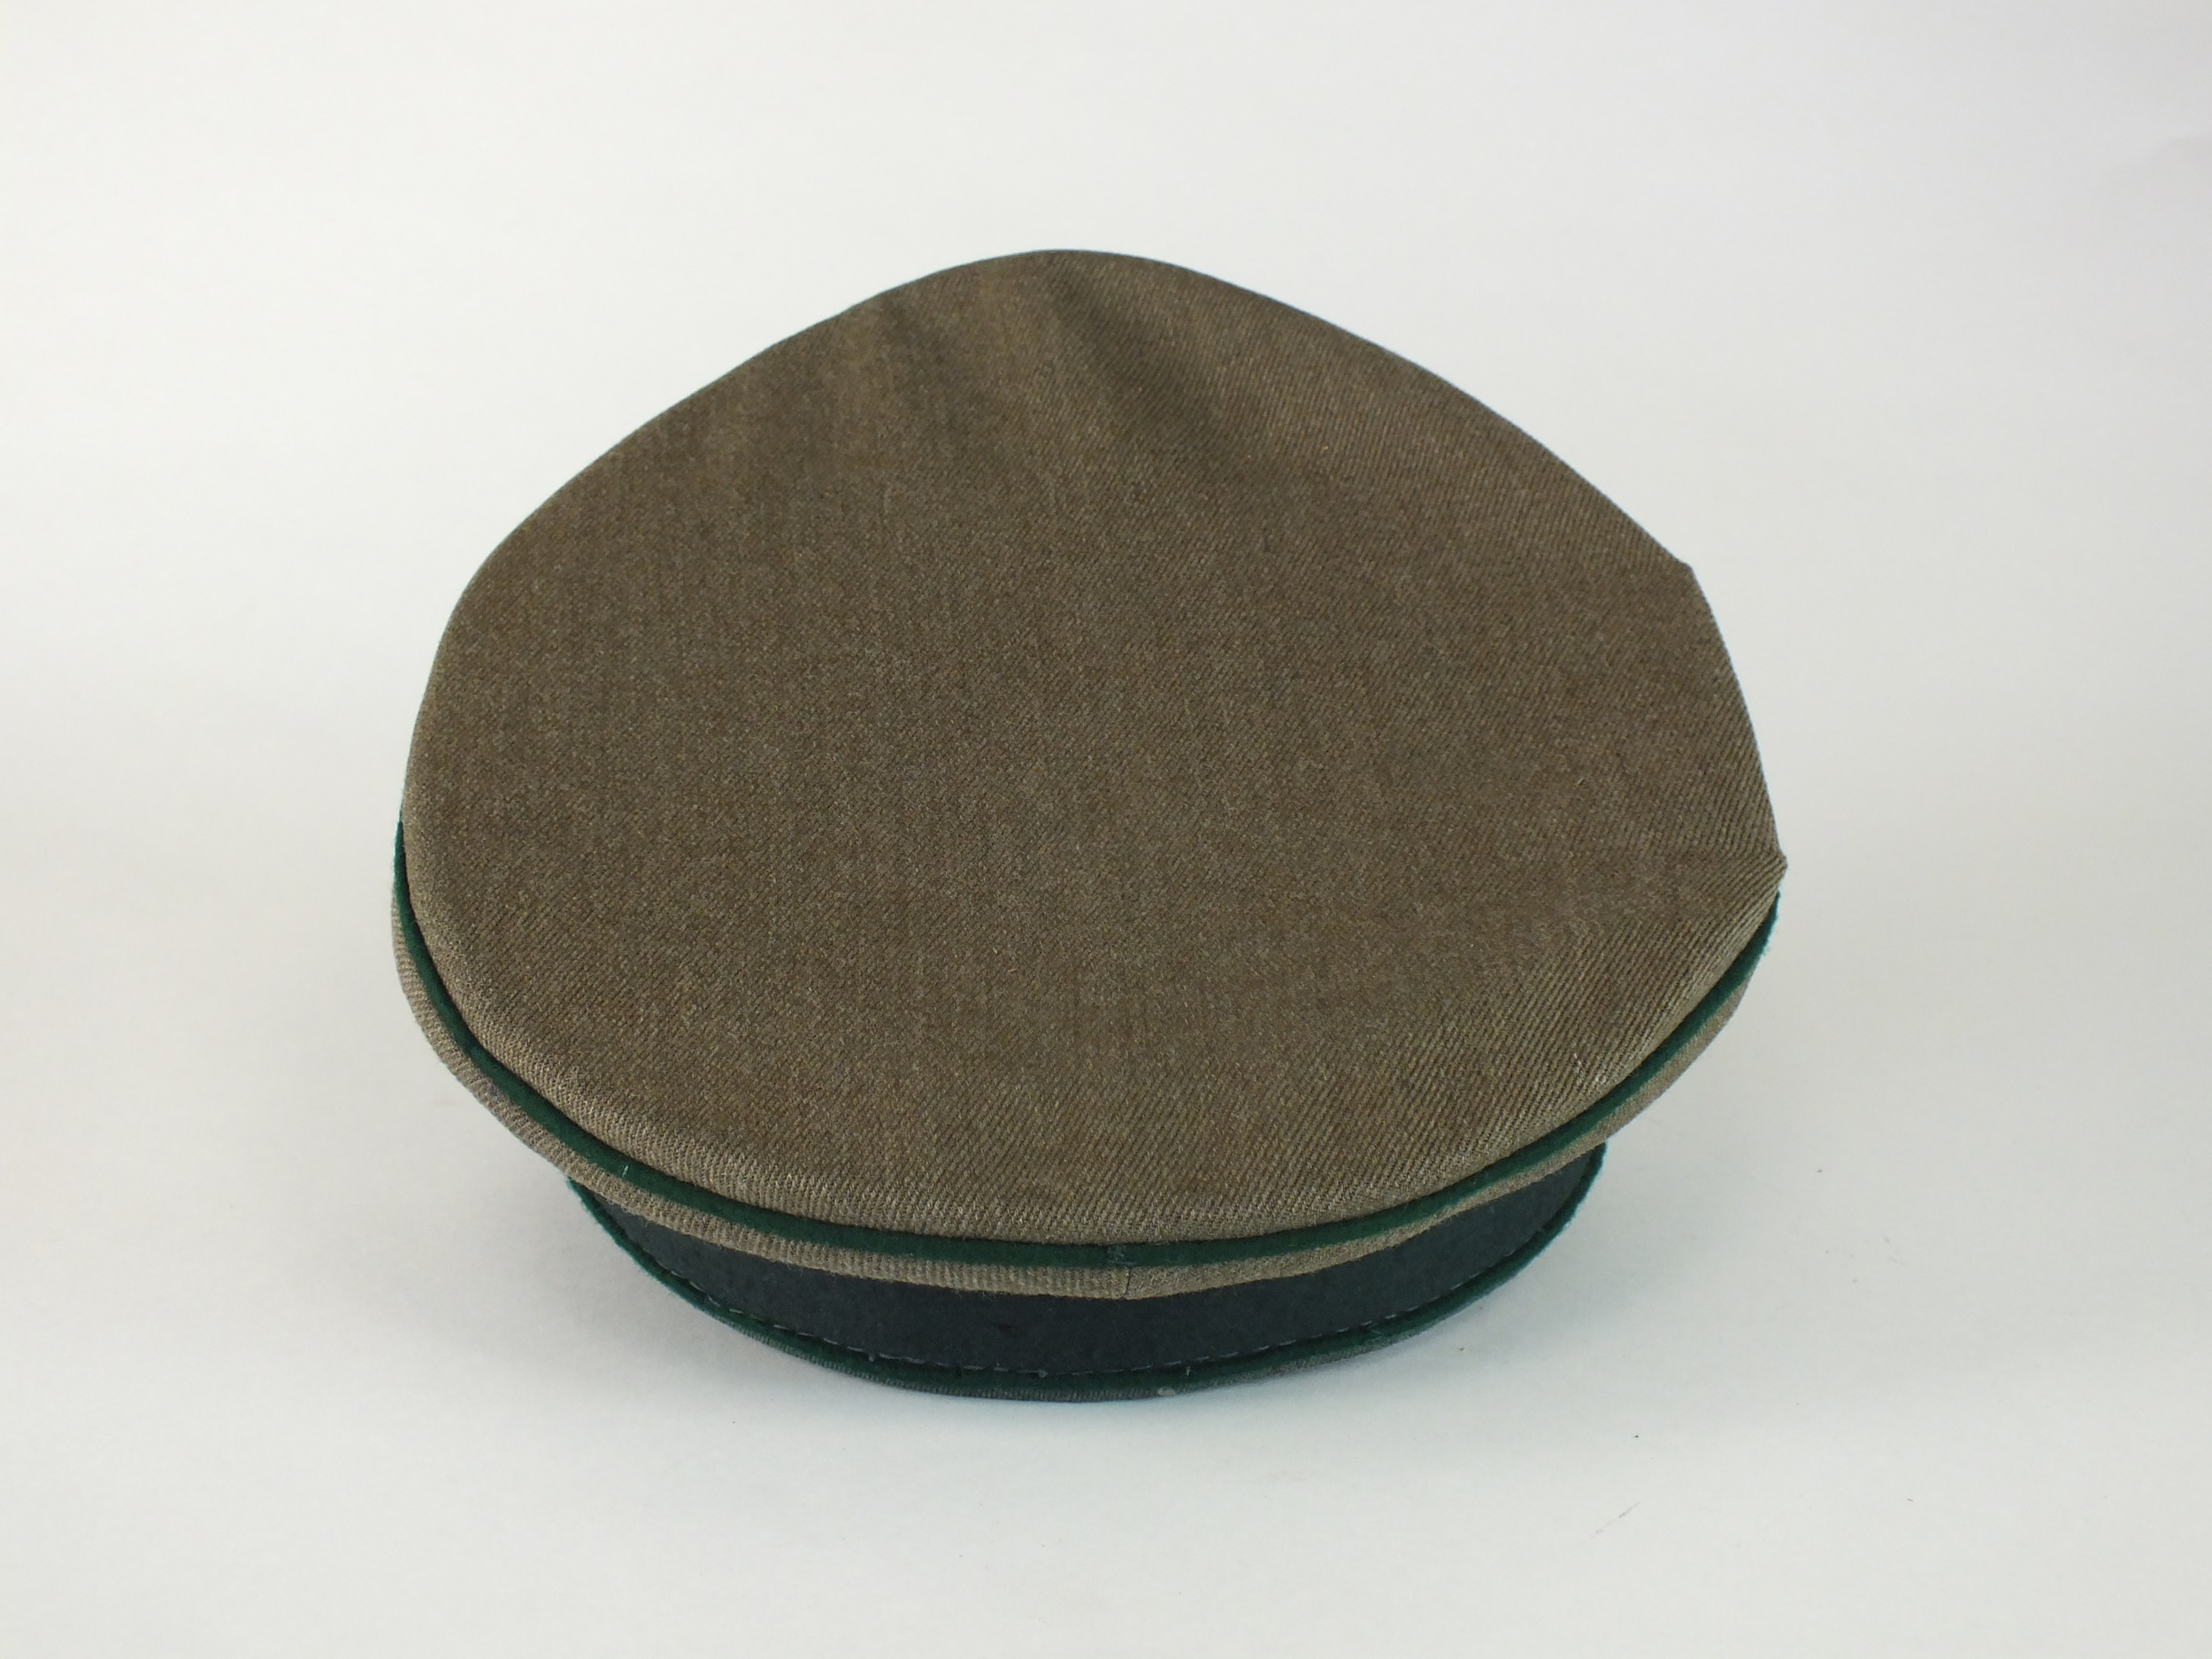 A German Army Administration Officer's visor cap, Austrian-made - Image 5 of 5